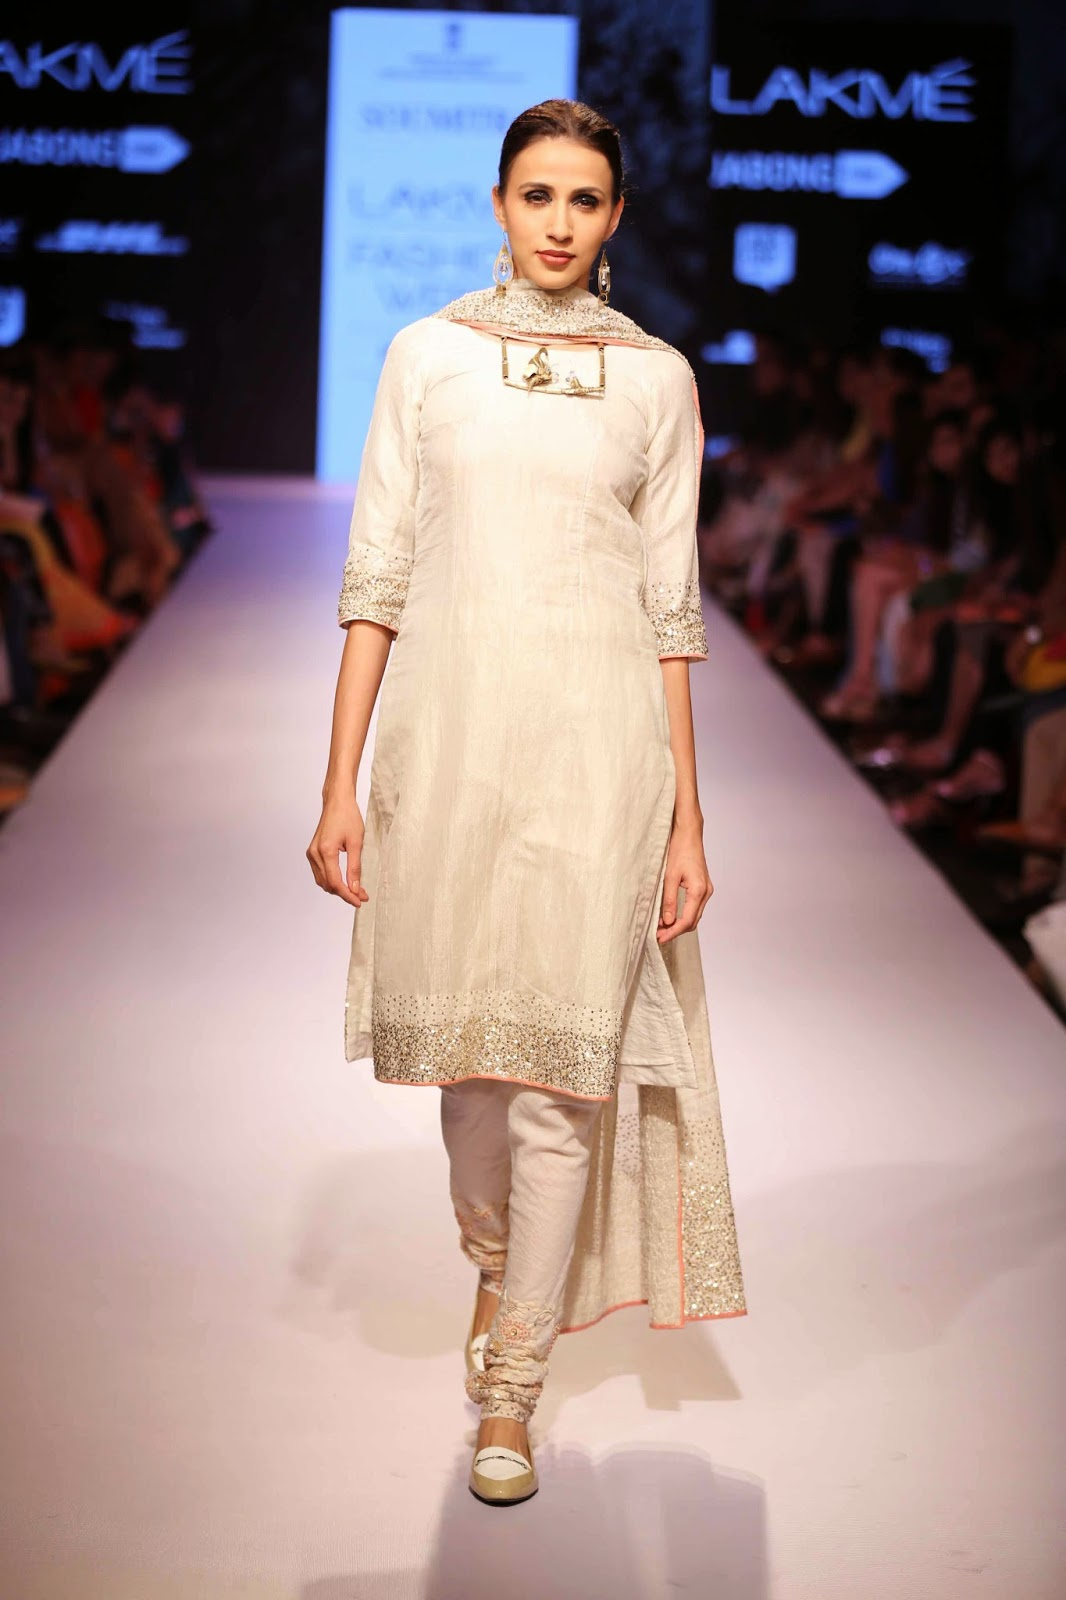 http://aquaintperspective.blogspot.in/,LIFW Day 2, Soumitra Mondal